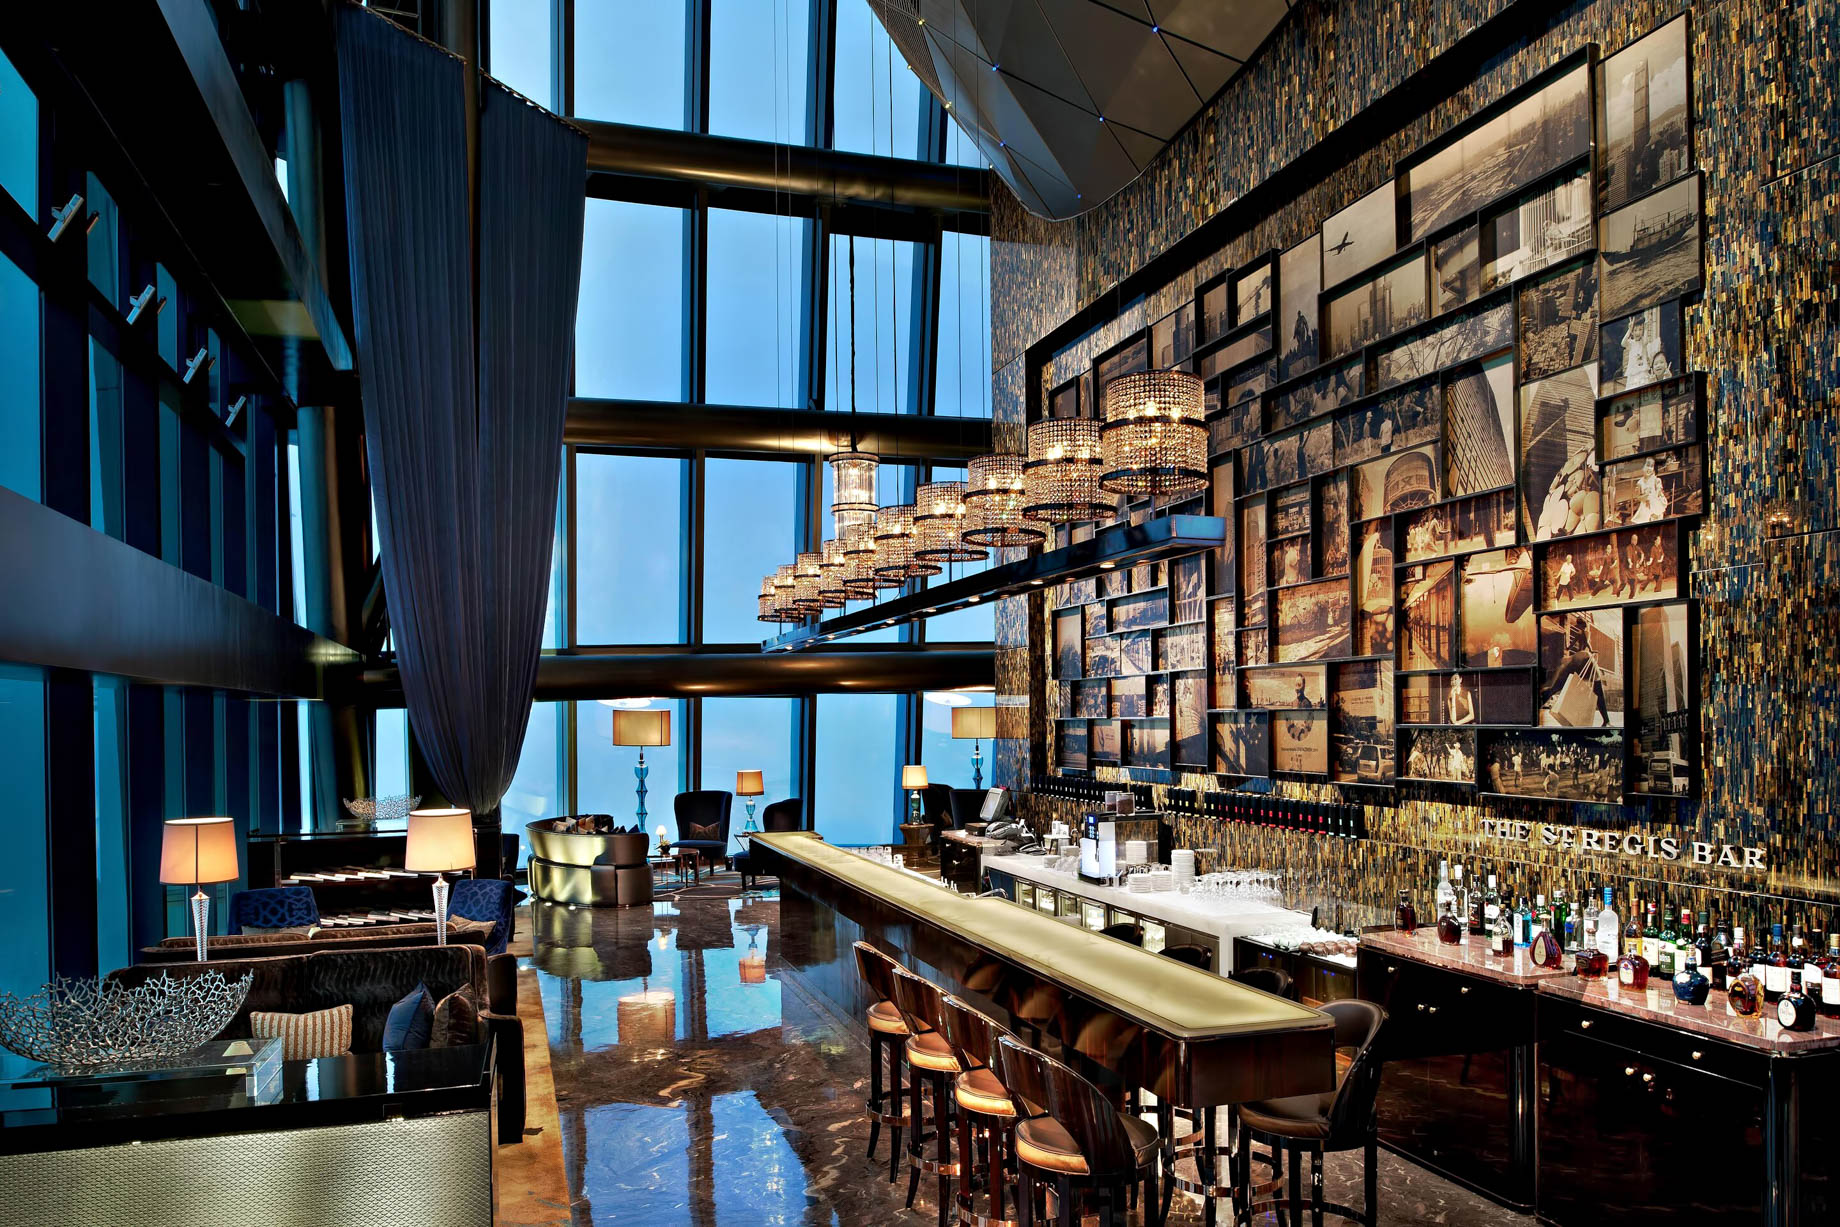 The St. Regis Shenzhen Luxury Hotel – Shenzhen, China – The St. Regis Bar